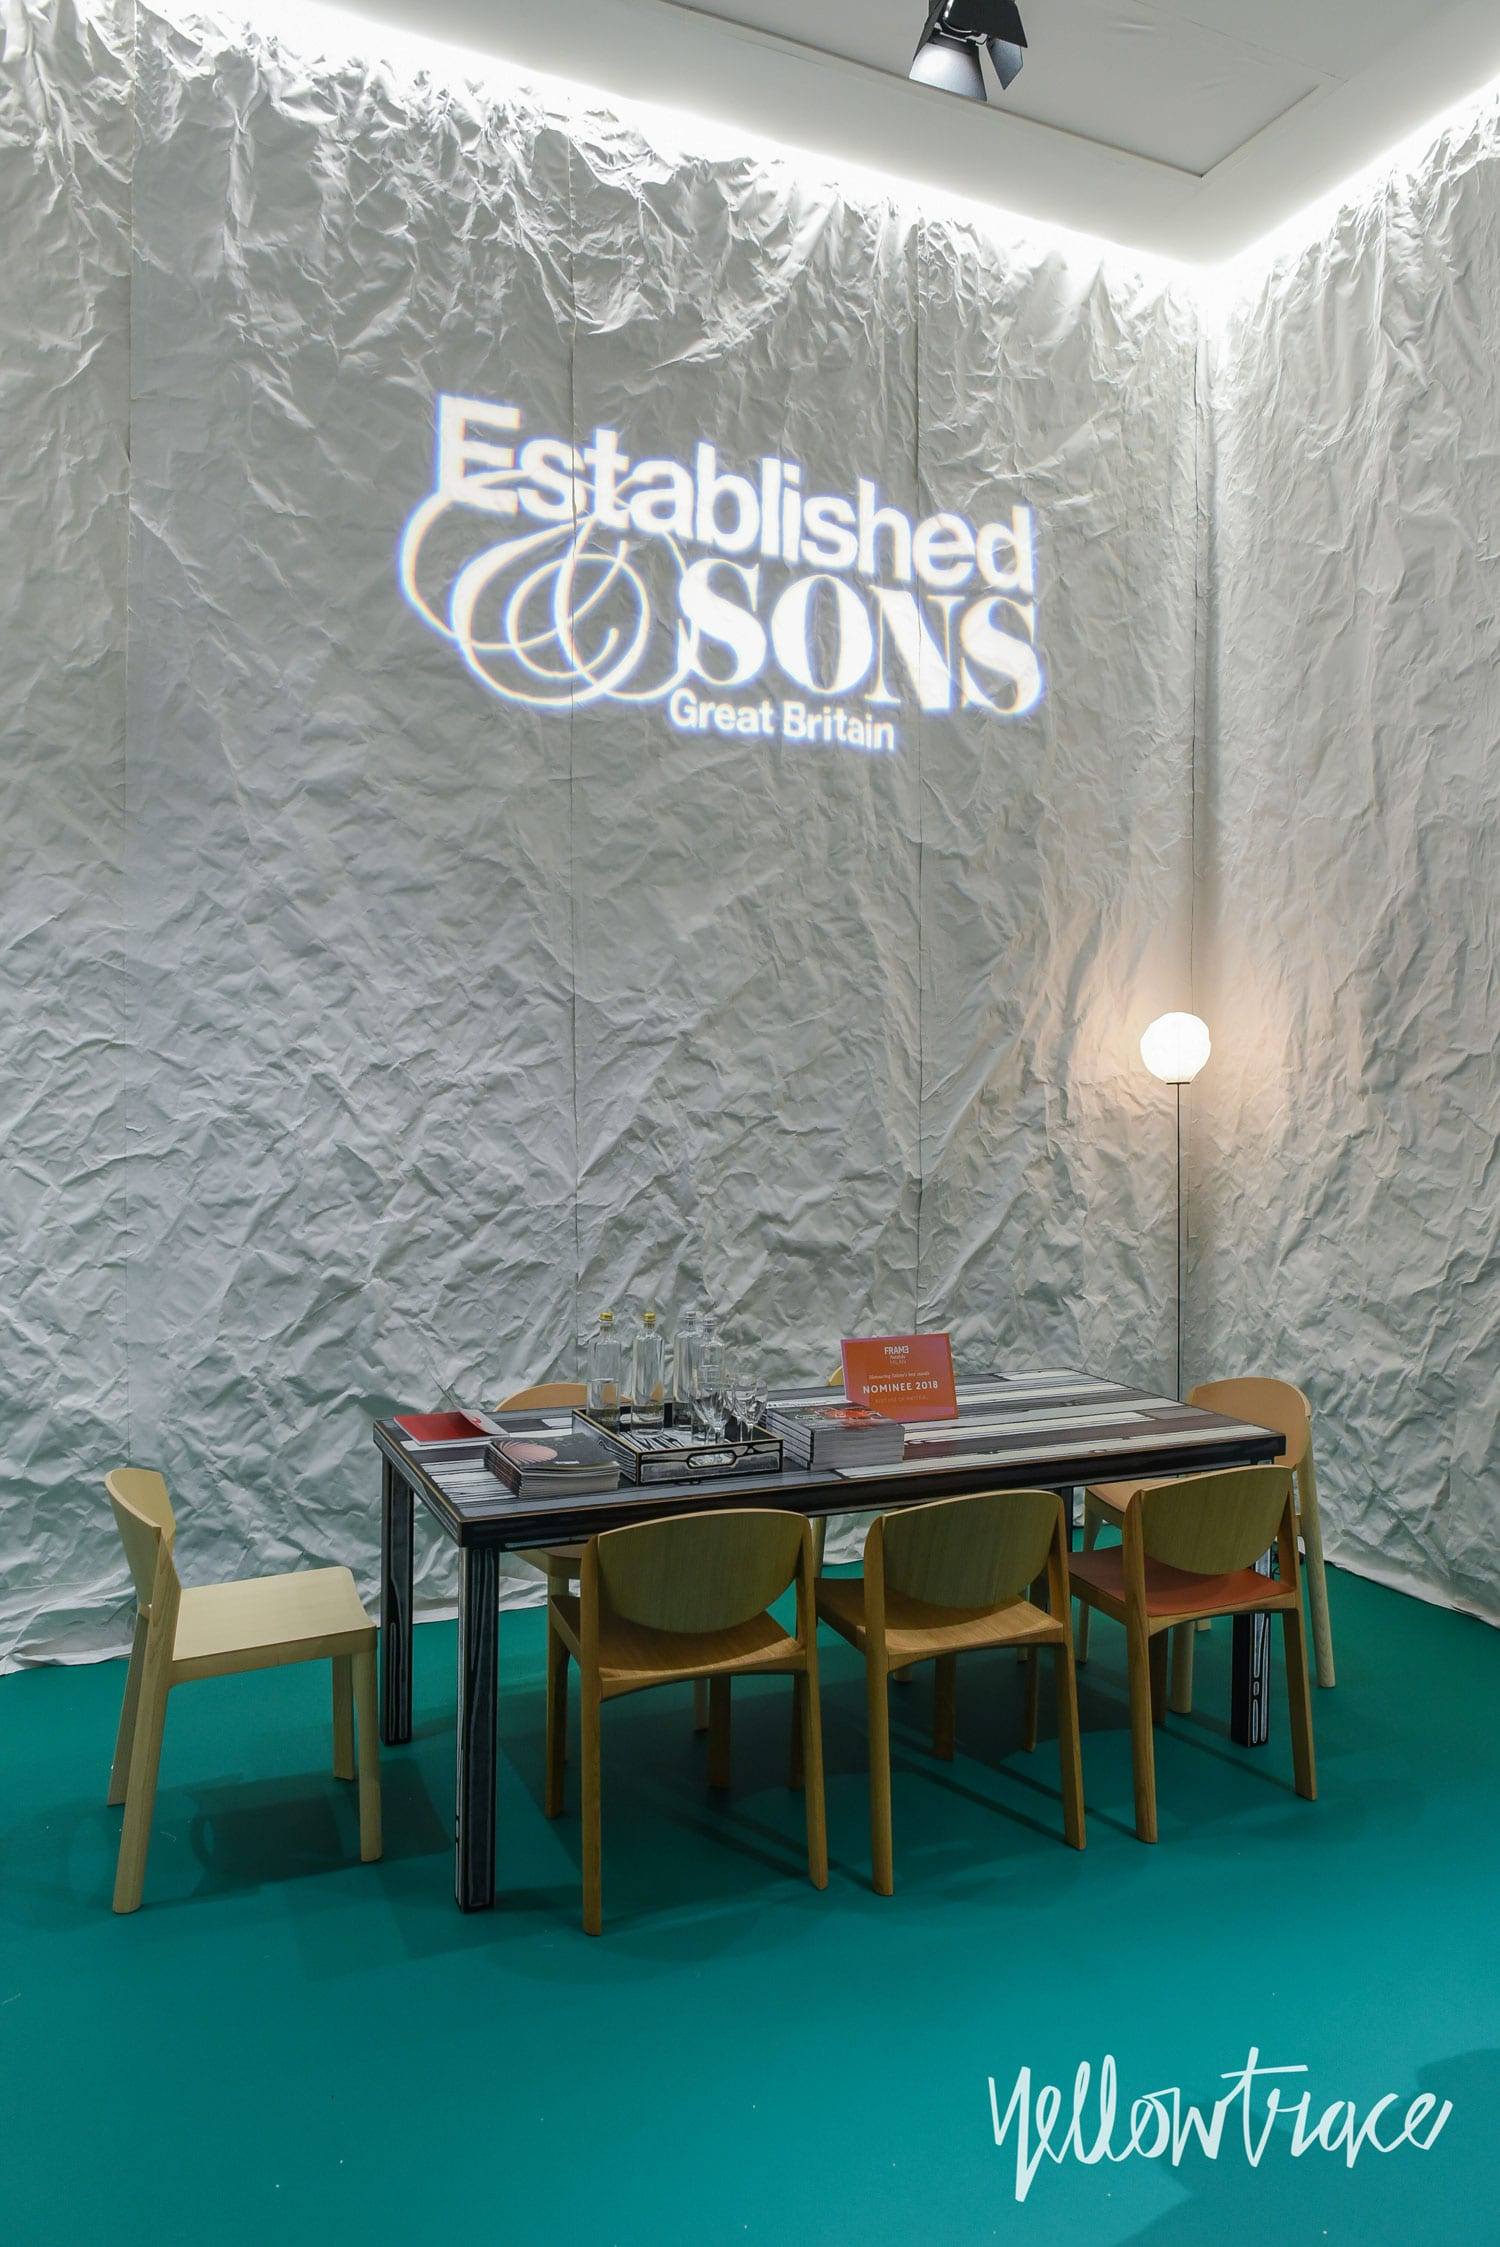 Established & Sons Salone del Mobile Highlights. Photo by Nick Hughes | #Milantrace2018